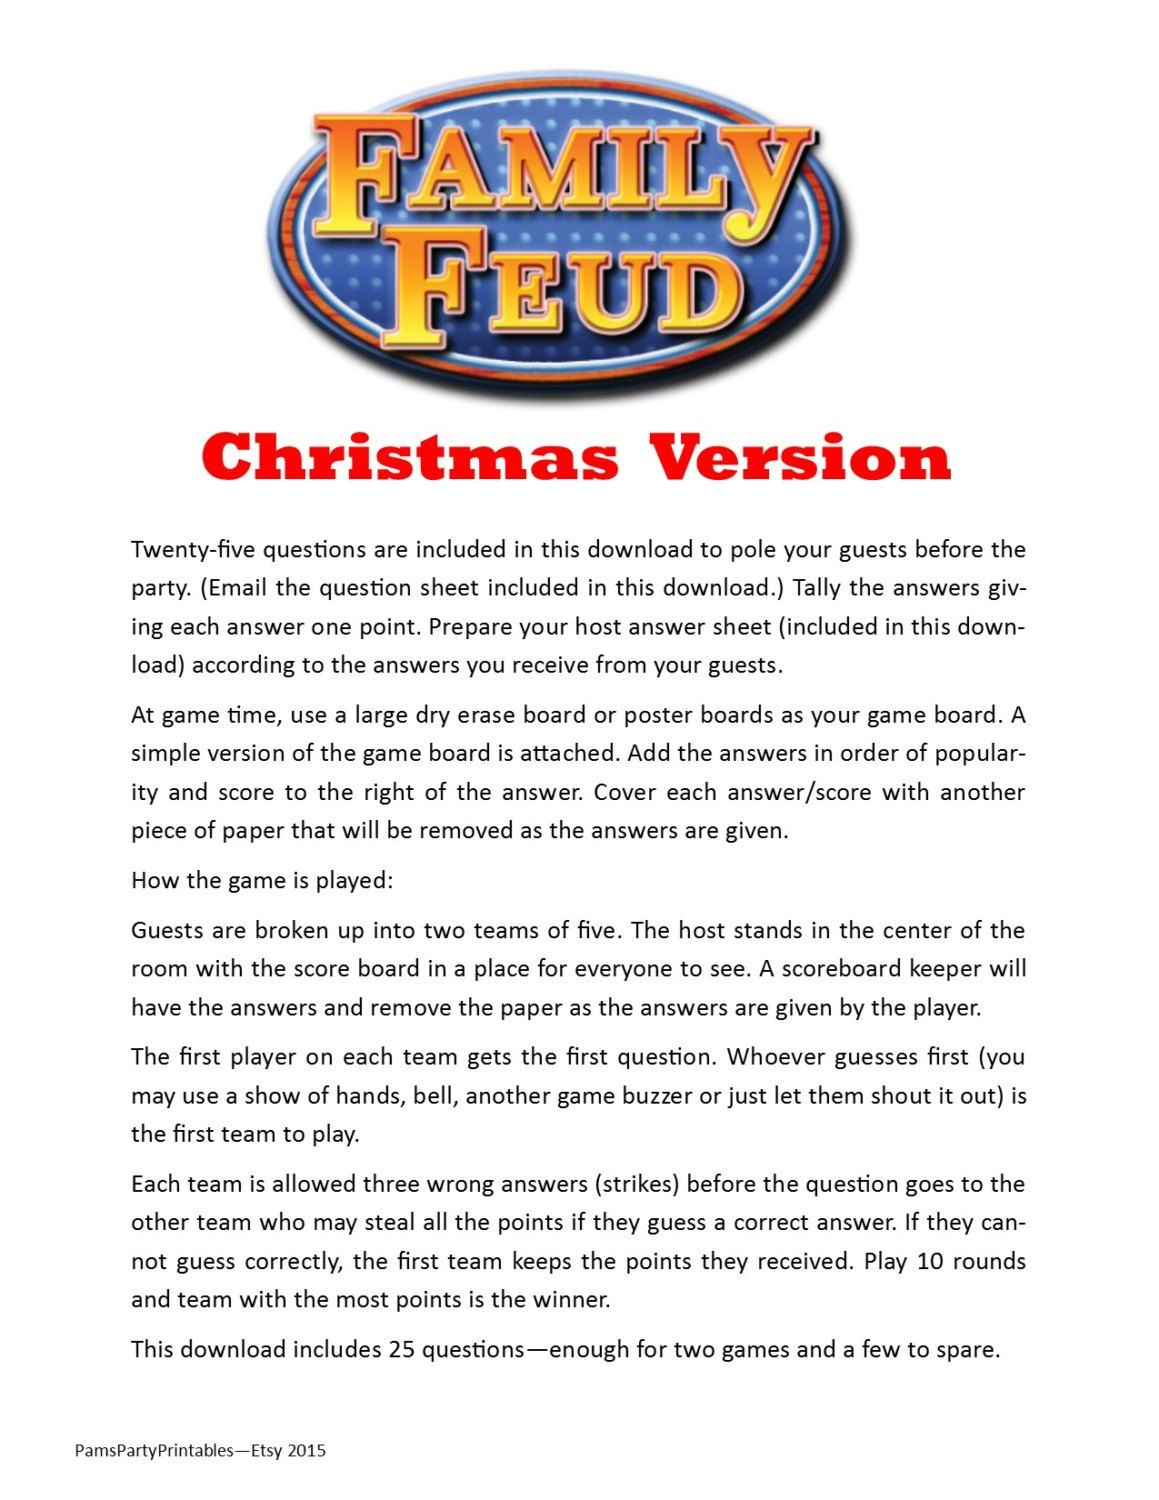 Christmas Family Feud - Printable Game - Christmas Family Game - Free Printable Christmas Games For Family Gatherings